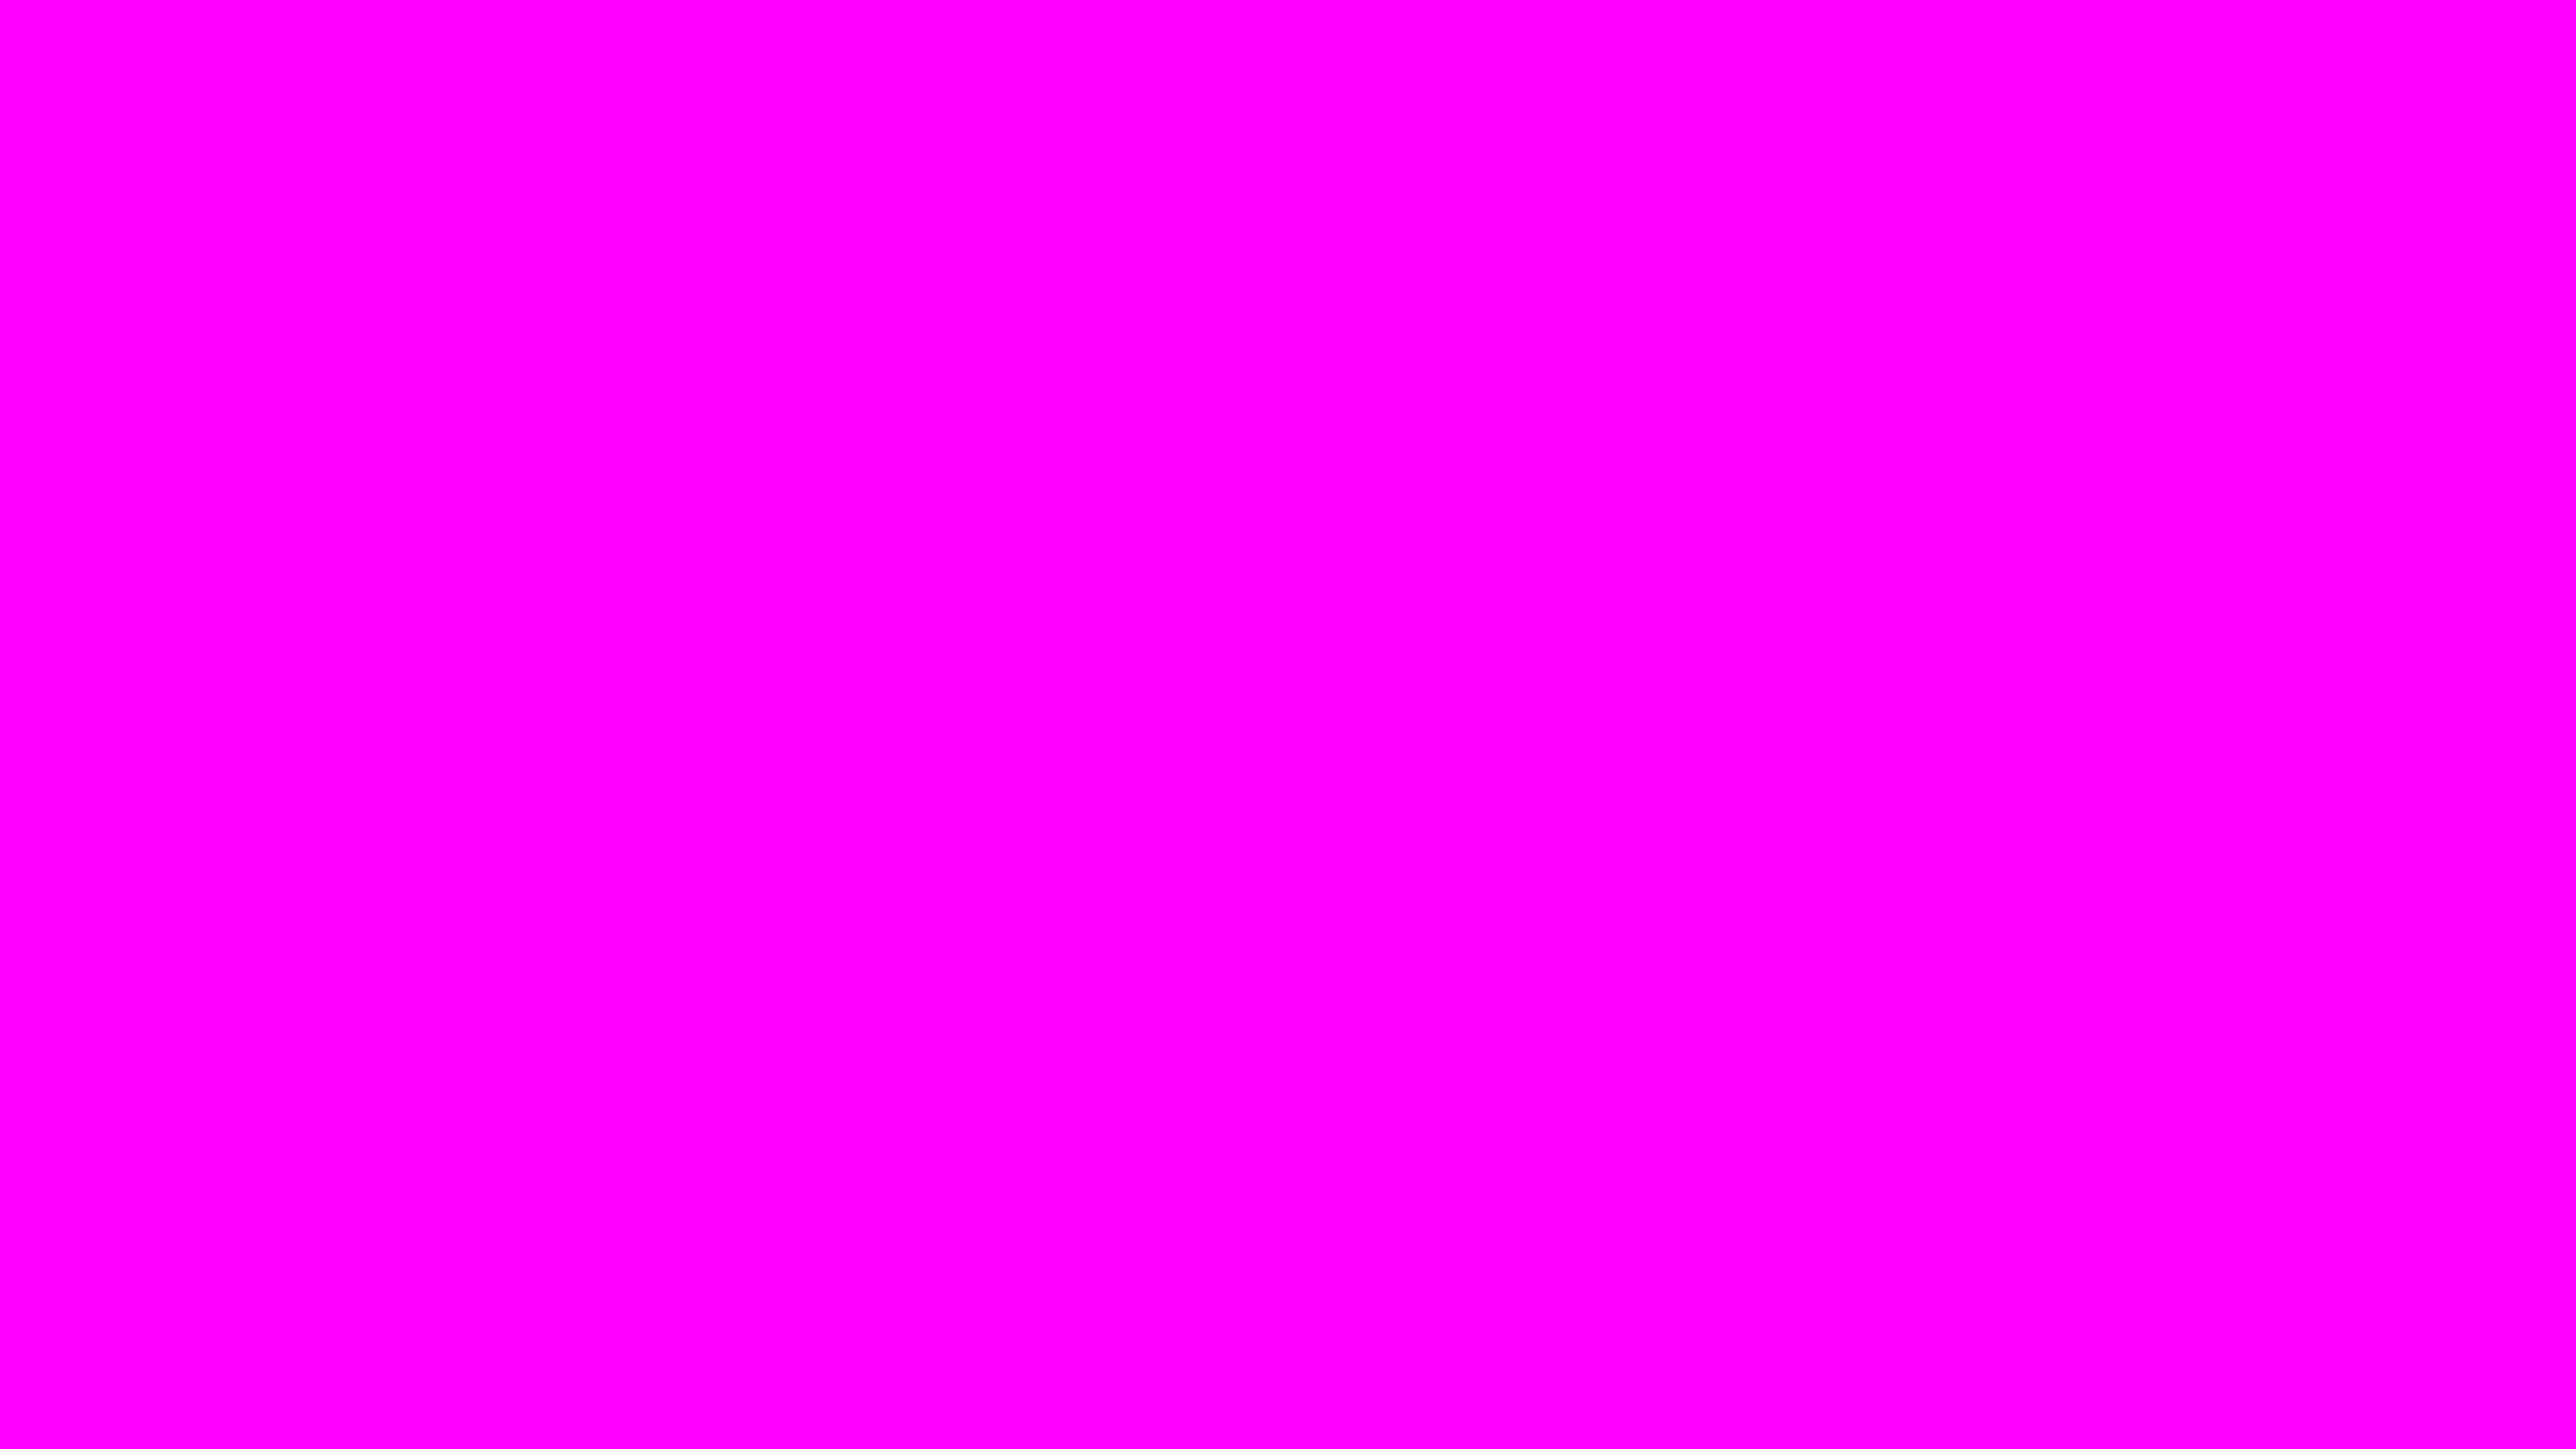 5120x2880 Fuchsia Solid Color Background